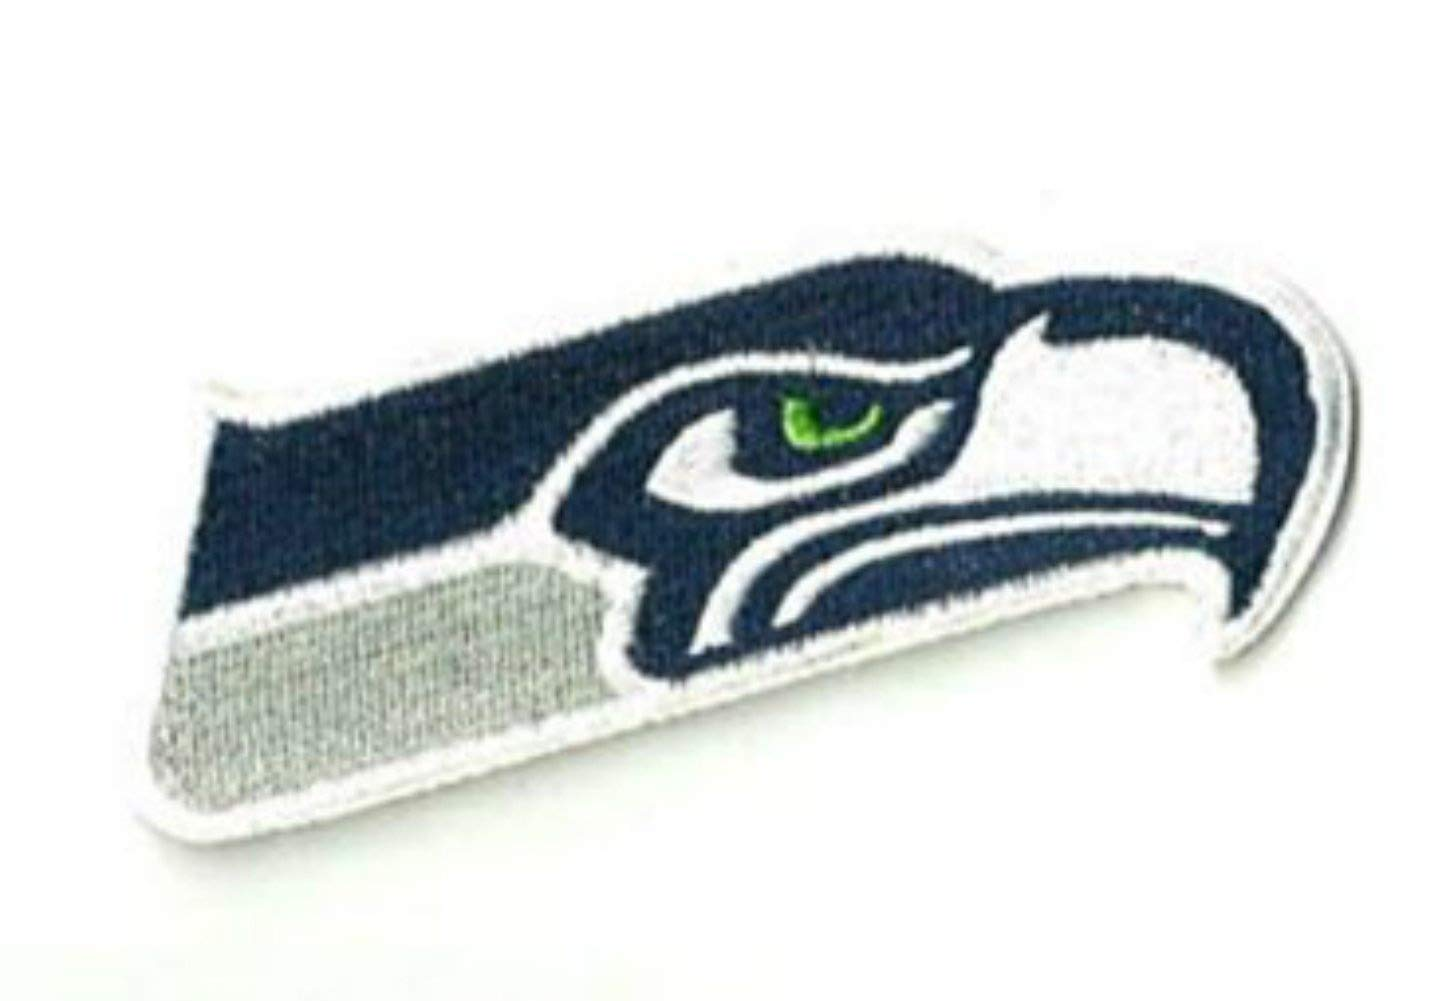 InspireMe Family Owned Seahawk Sew/Iron-on Patch/Applique 3.5' x 1.5'